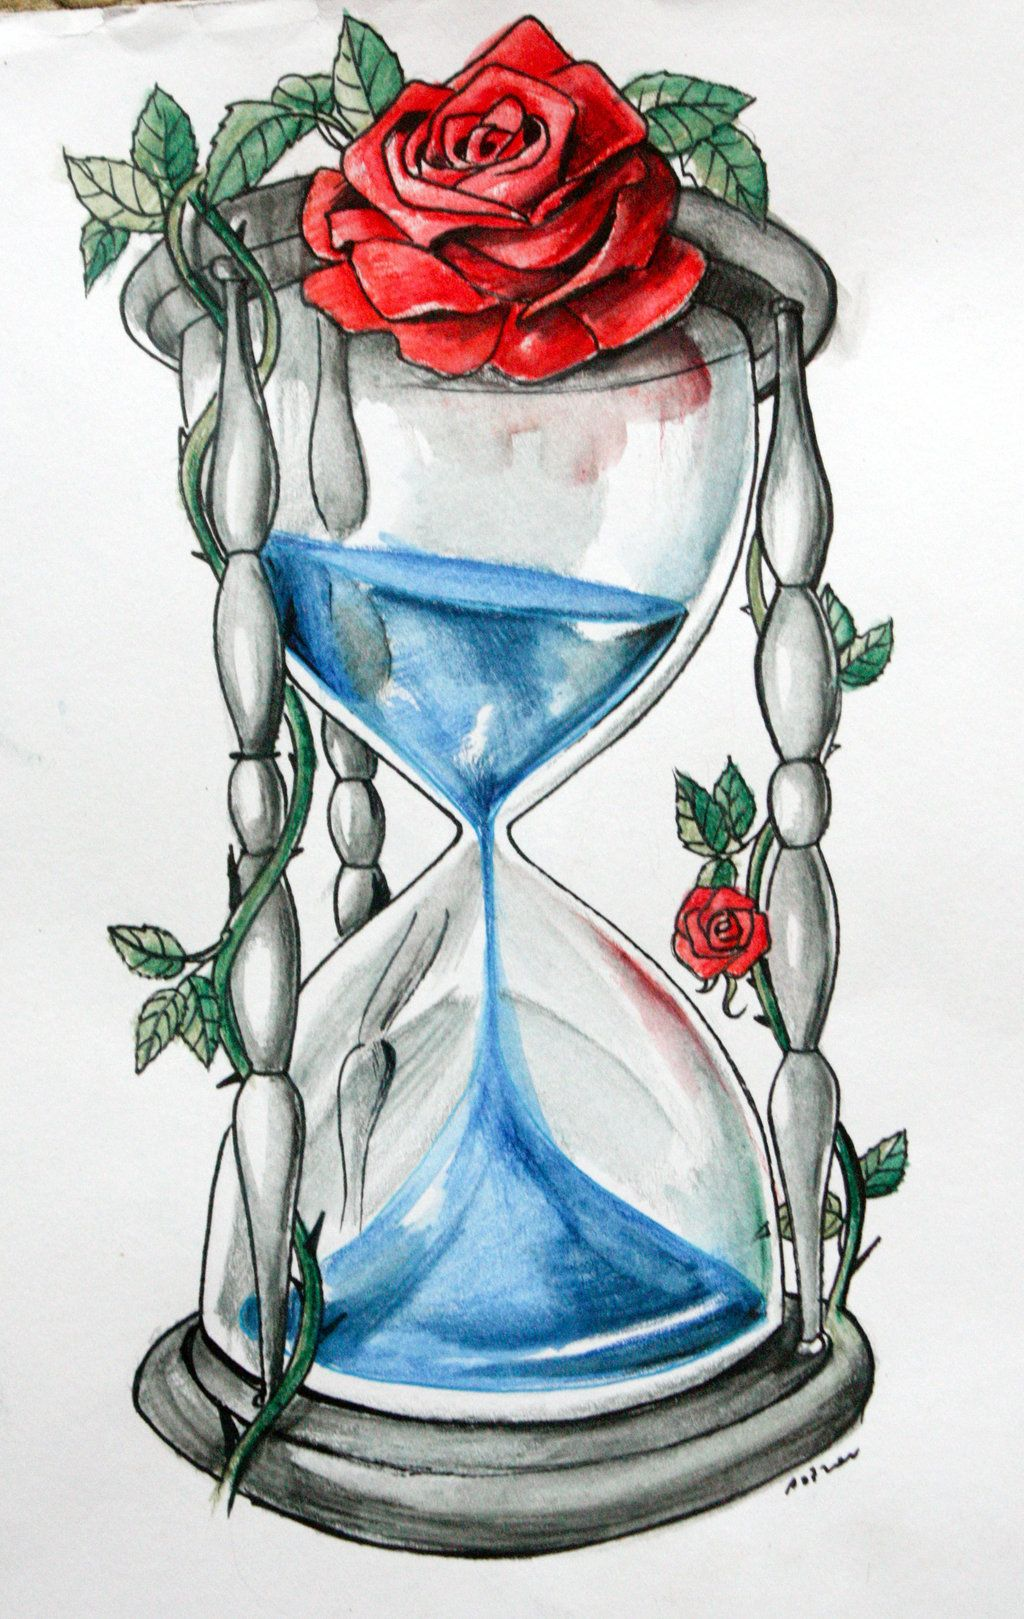 Blue Blood Hourglass By ArtOfAsthardeviantartcom On DeviantArt